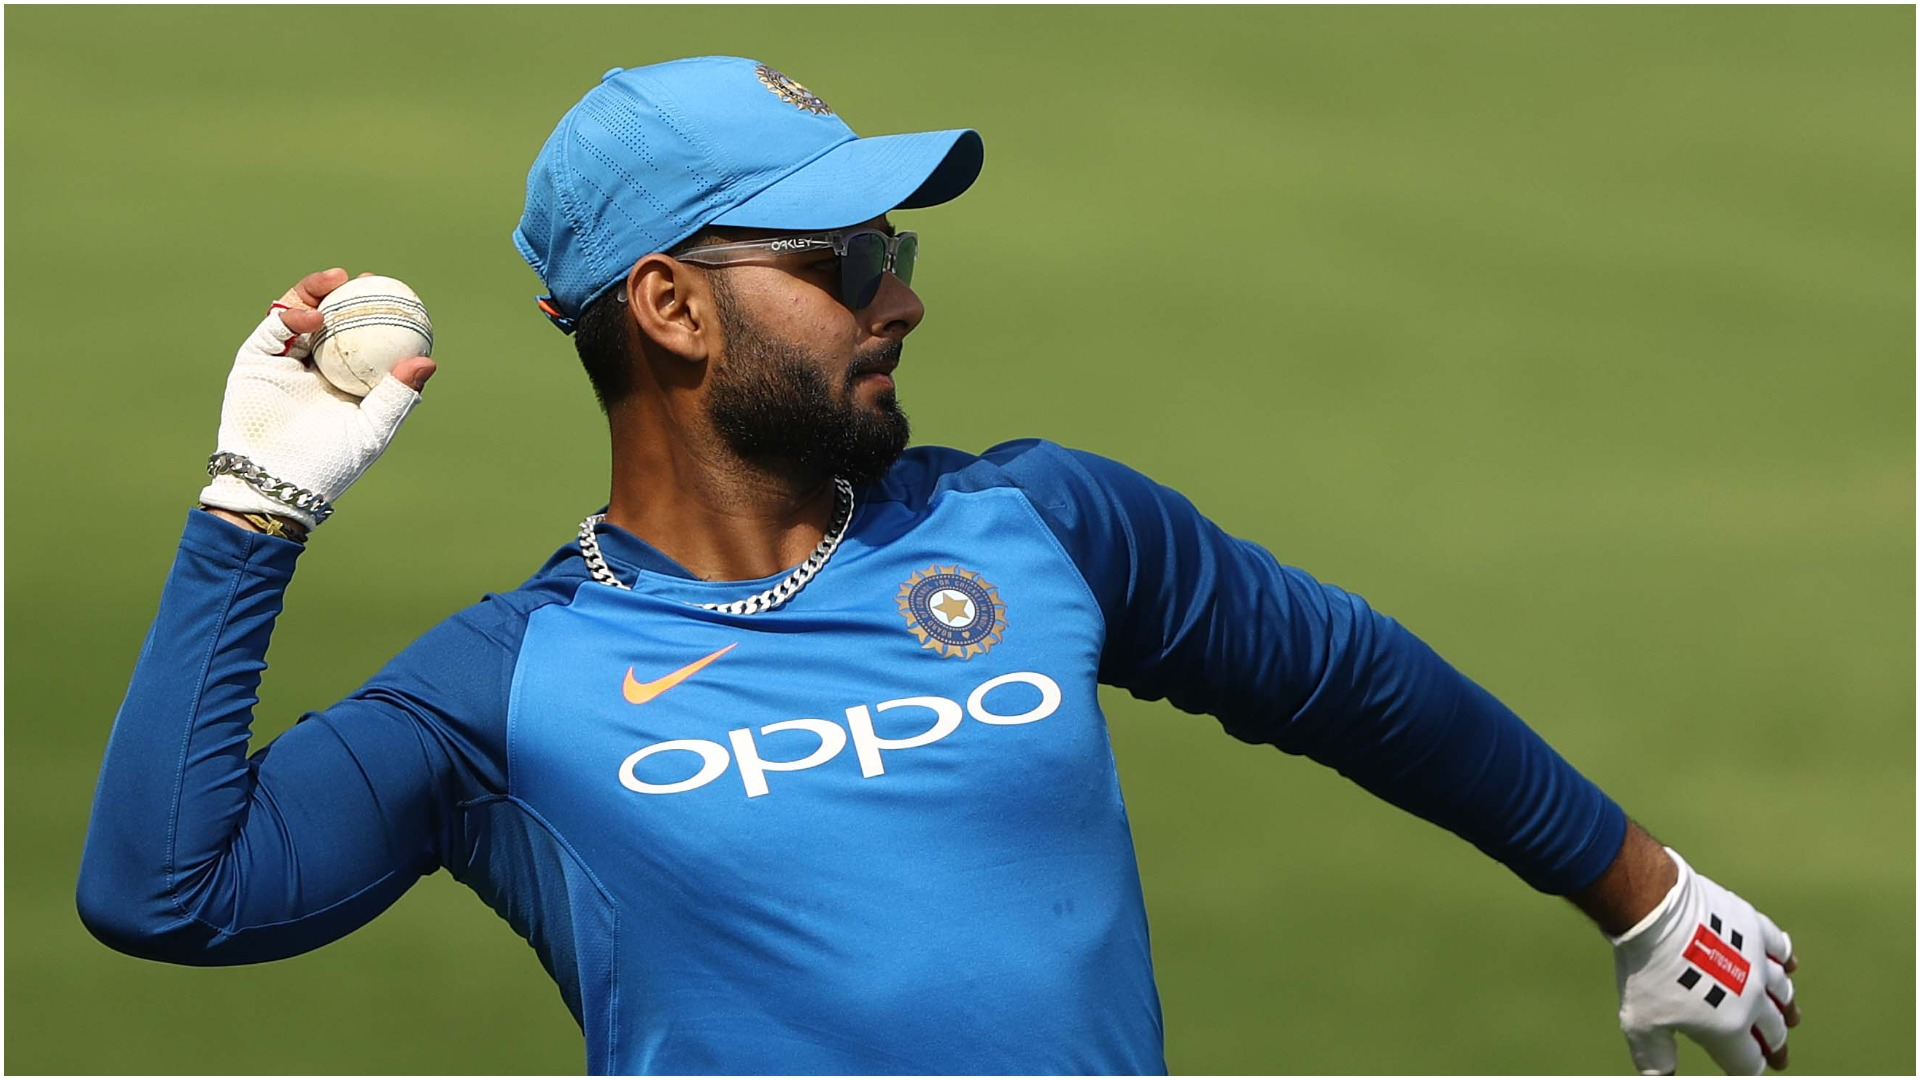 Despite appearing to be well placed in recent months, neither Rishabh Pant nor Ambati Rayudu have been selected for Cricket World Cup duty.